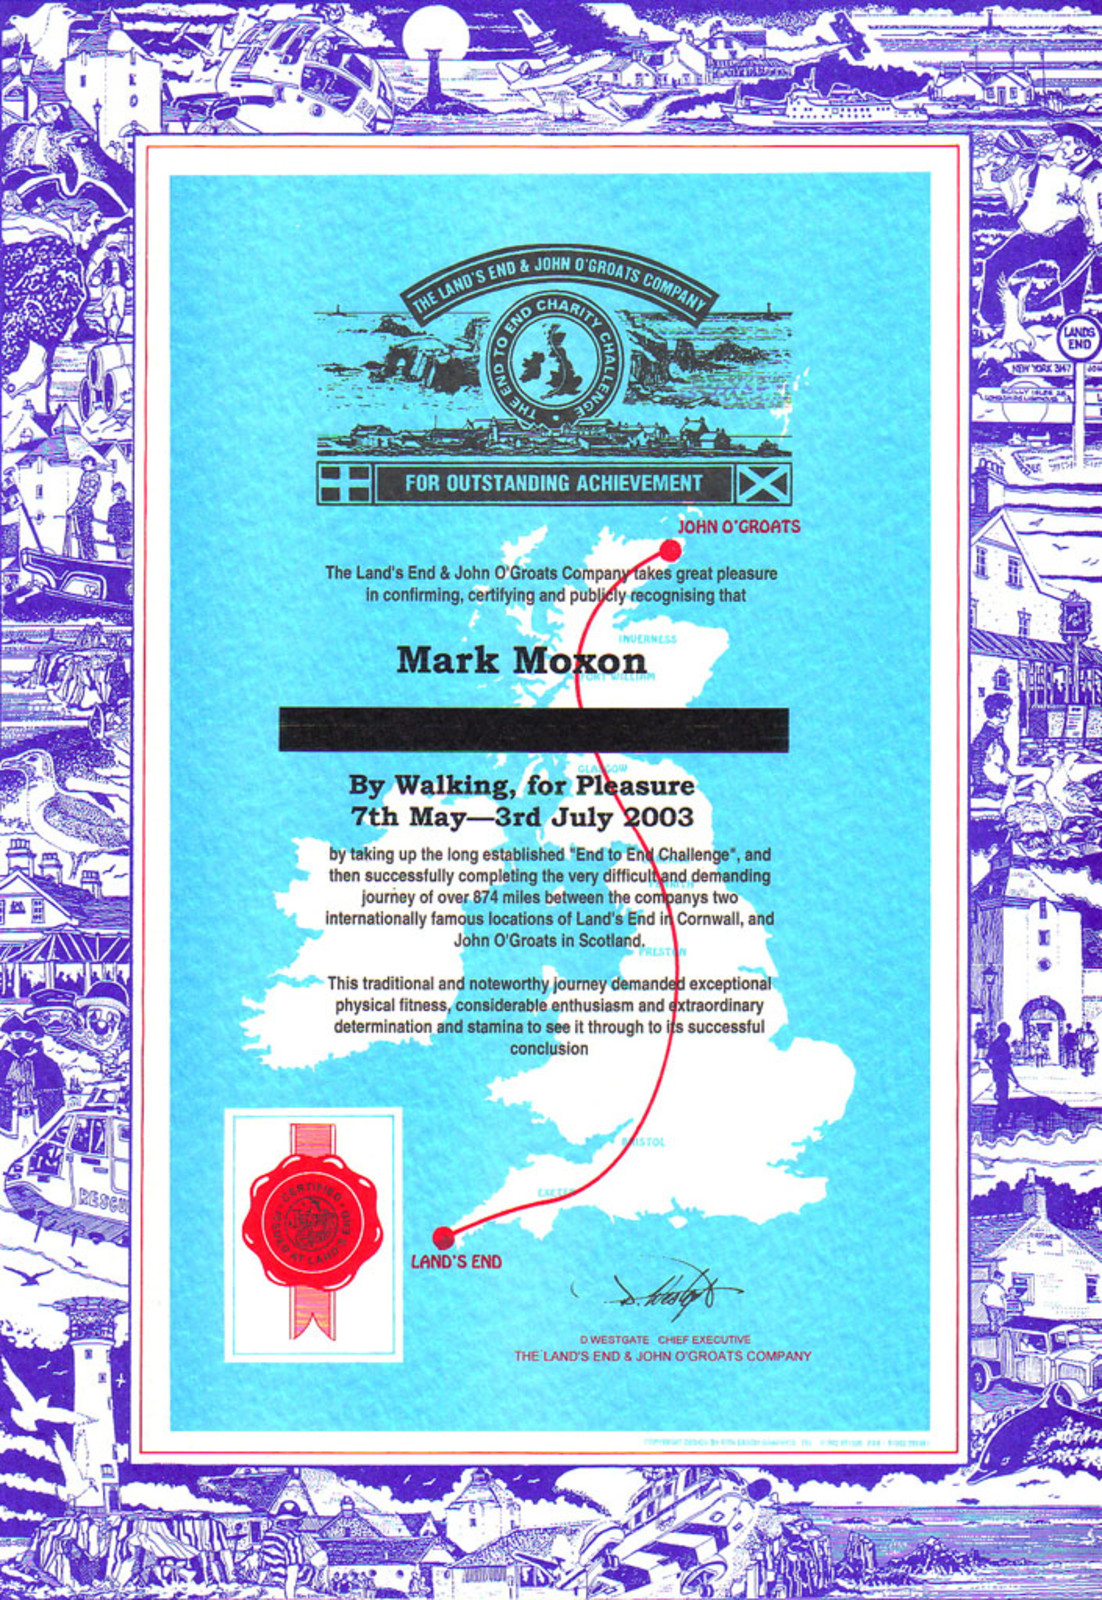 Mark's certificate from the Land's End and John o'Groats Company